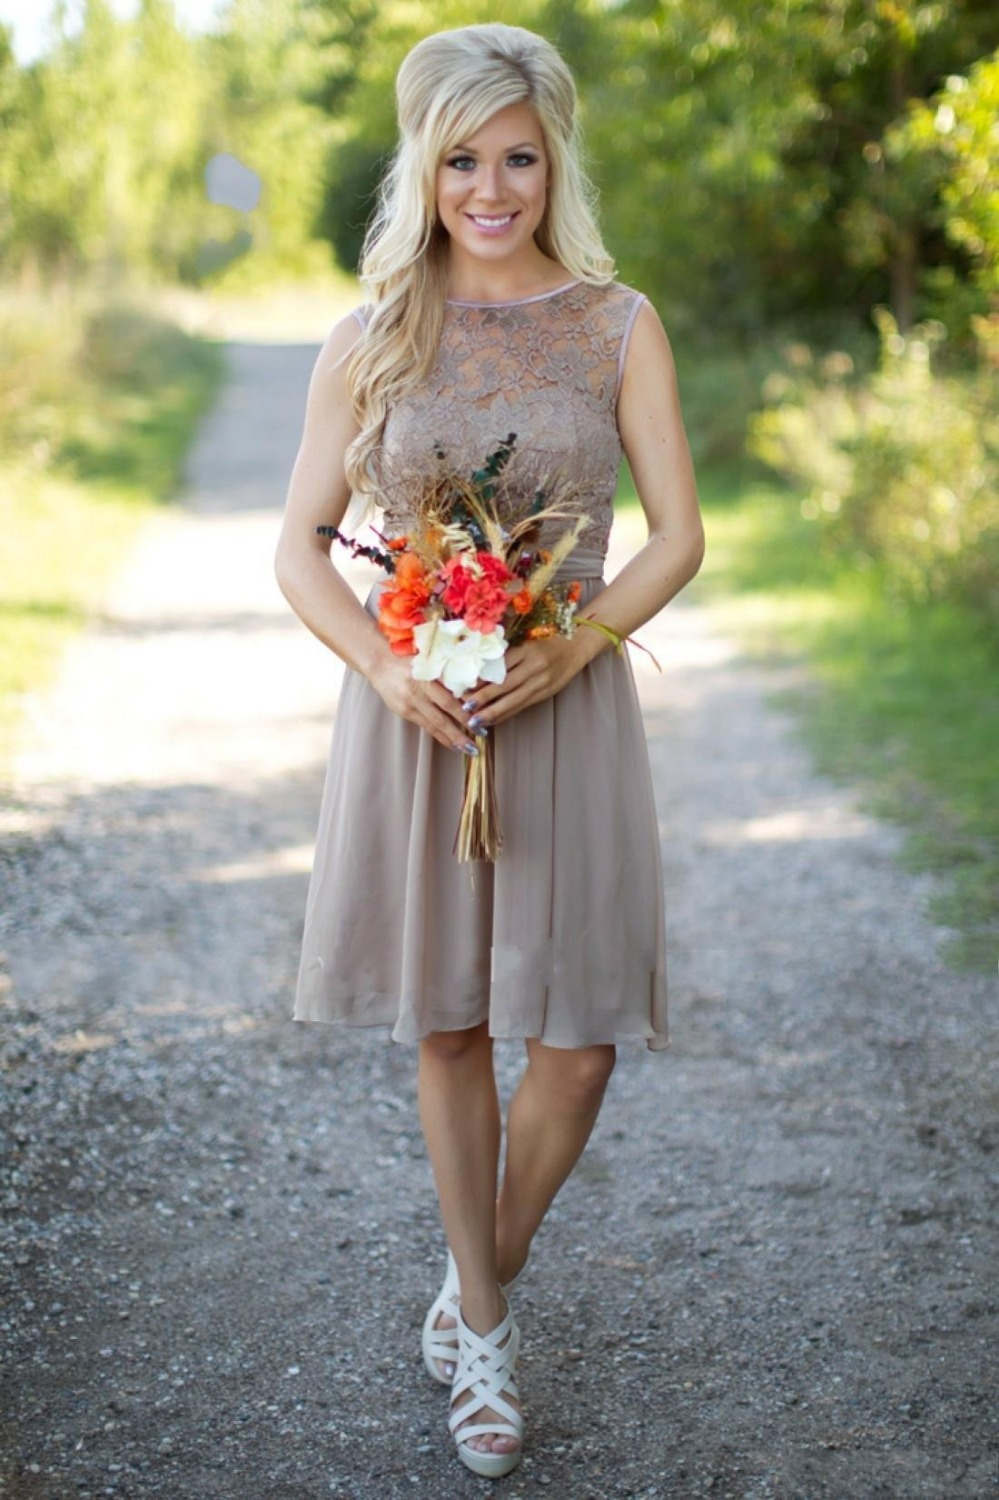 Hippie Bridesmaid Dresses Choice Image - Braidsmaid Dress ...